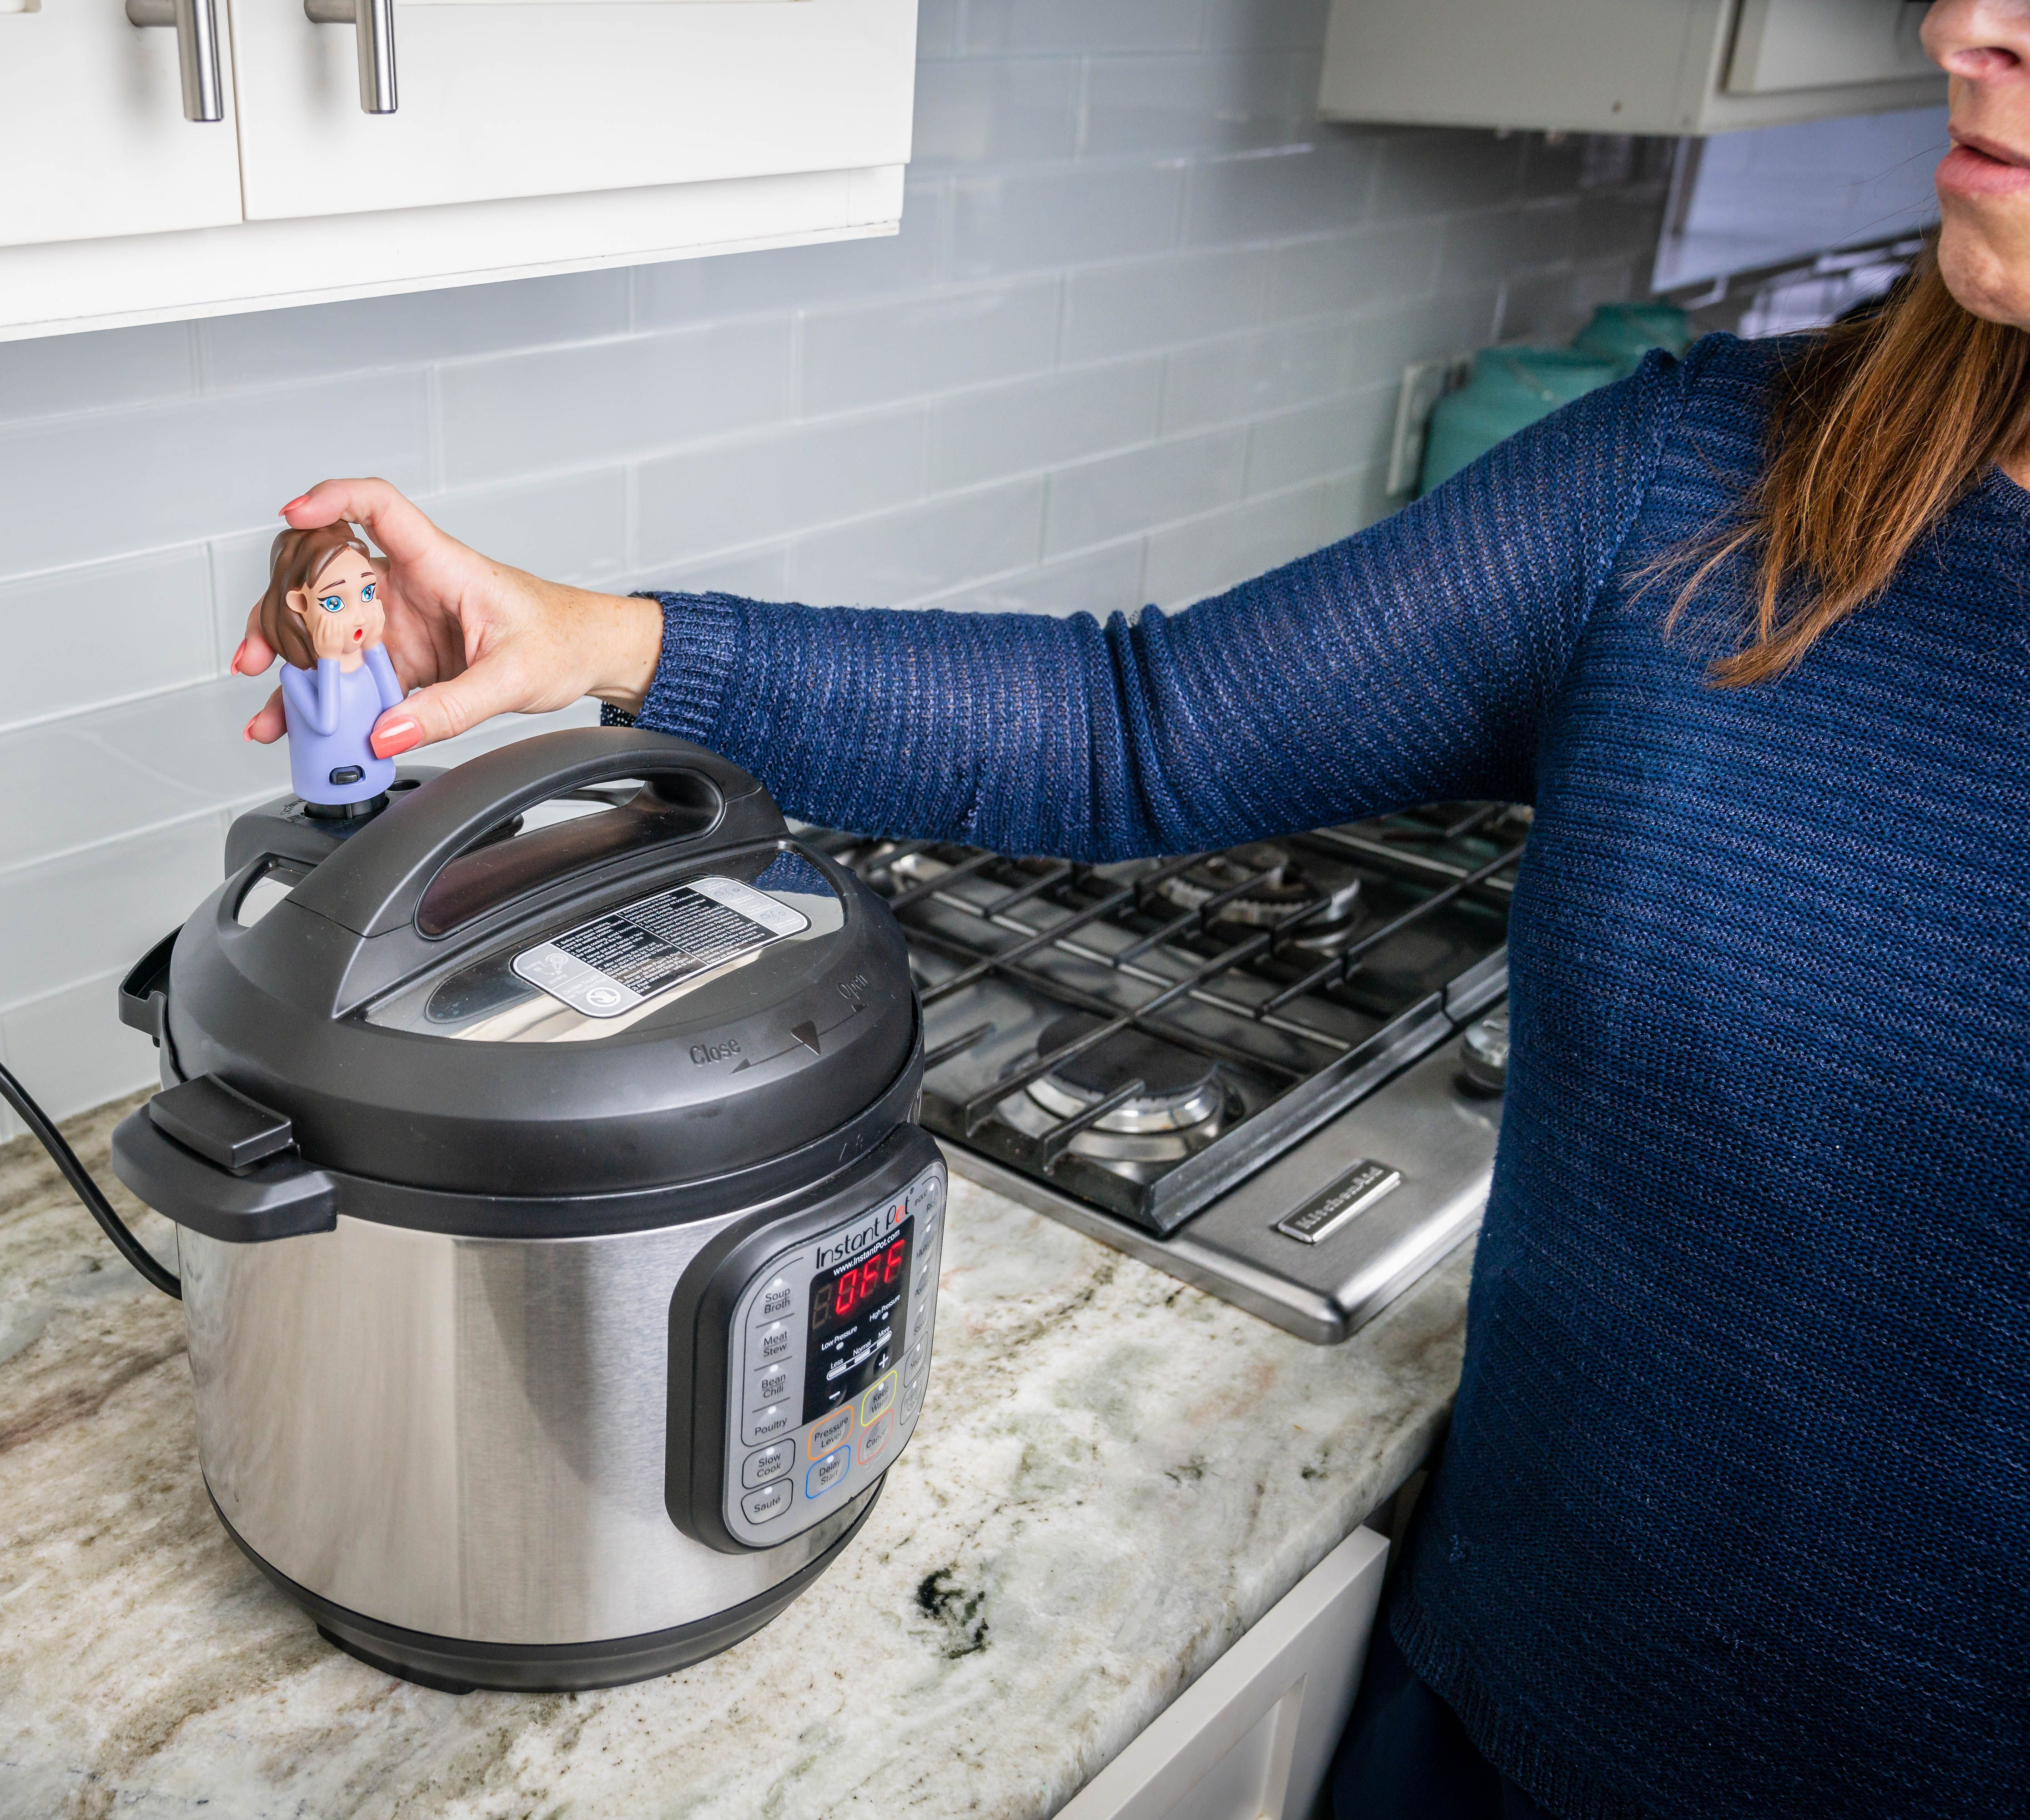 Before starting your cooker, position your SteamMate over